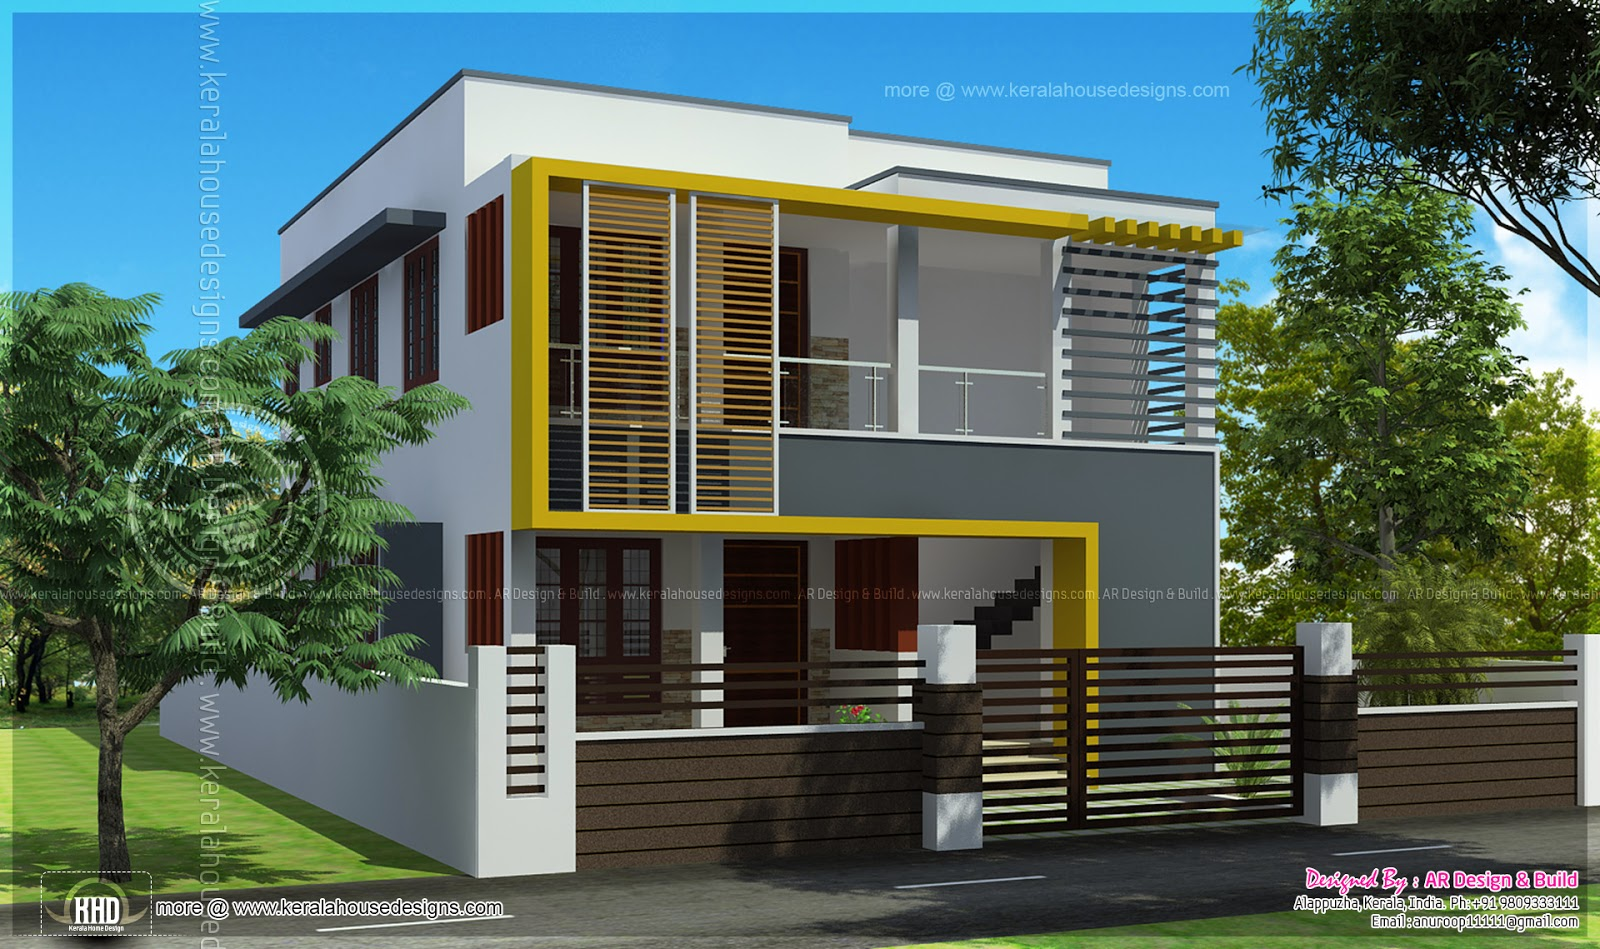 Duplex house elevation 1000 sq feet each kerala home design and floor plans - Duplex home elevation design photos ...